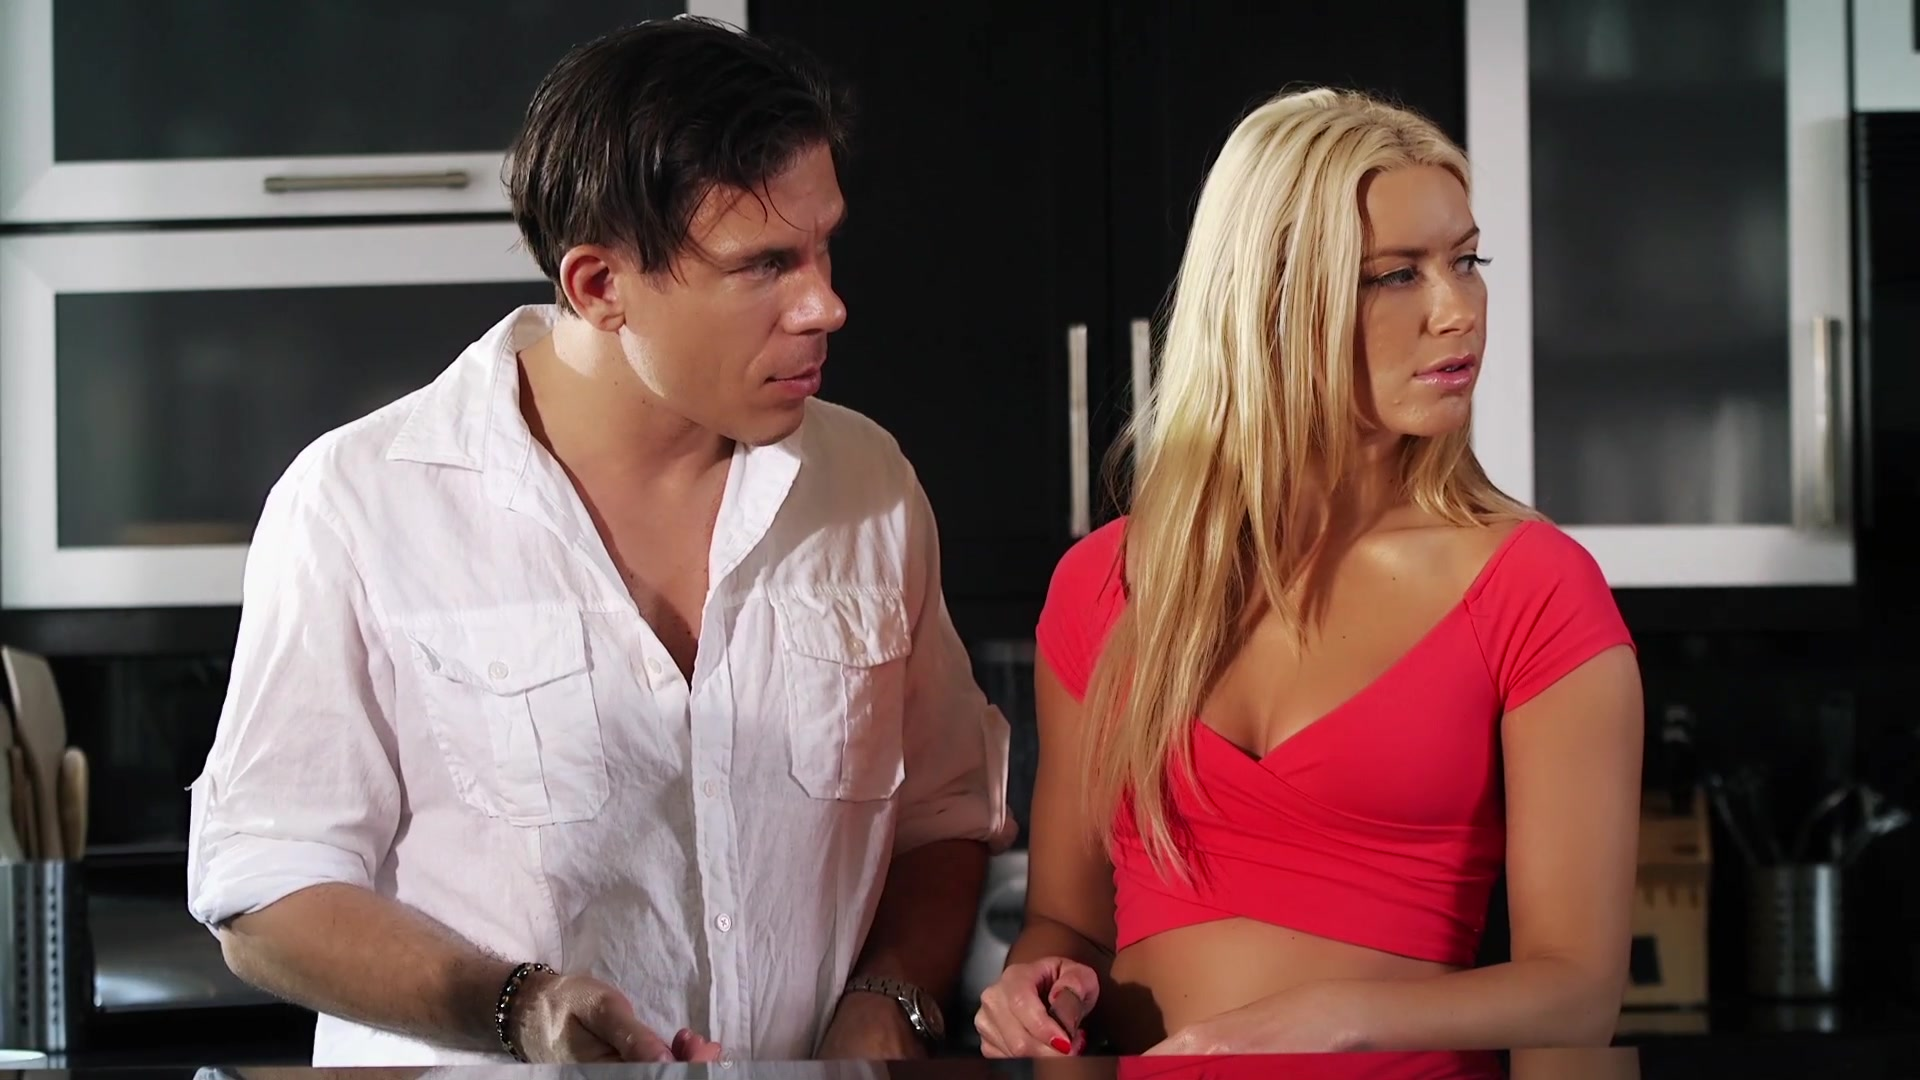 Scene with Mick Blue, Anikka Albrite and Sara Luvv - image 1 out of 20